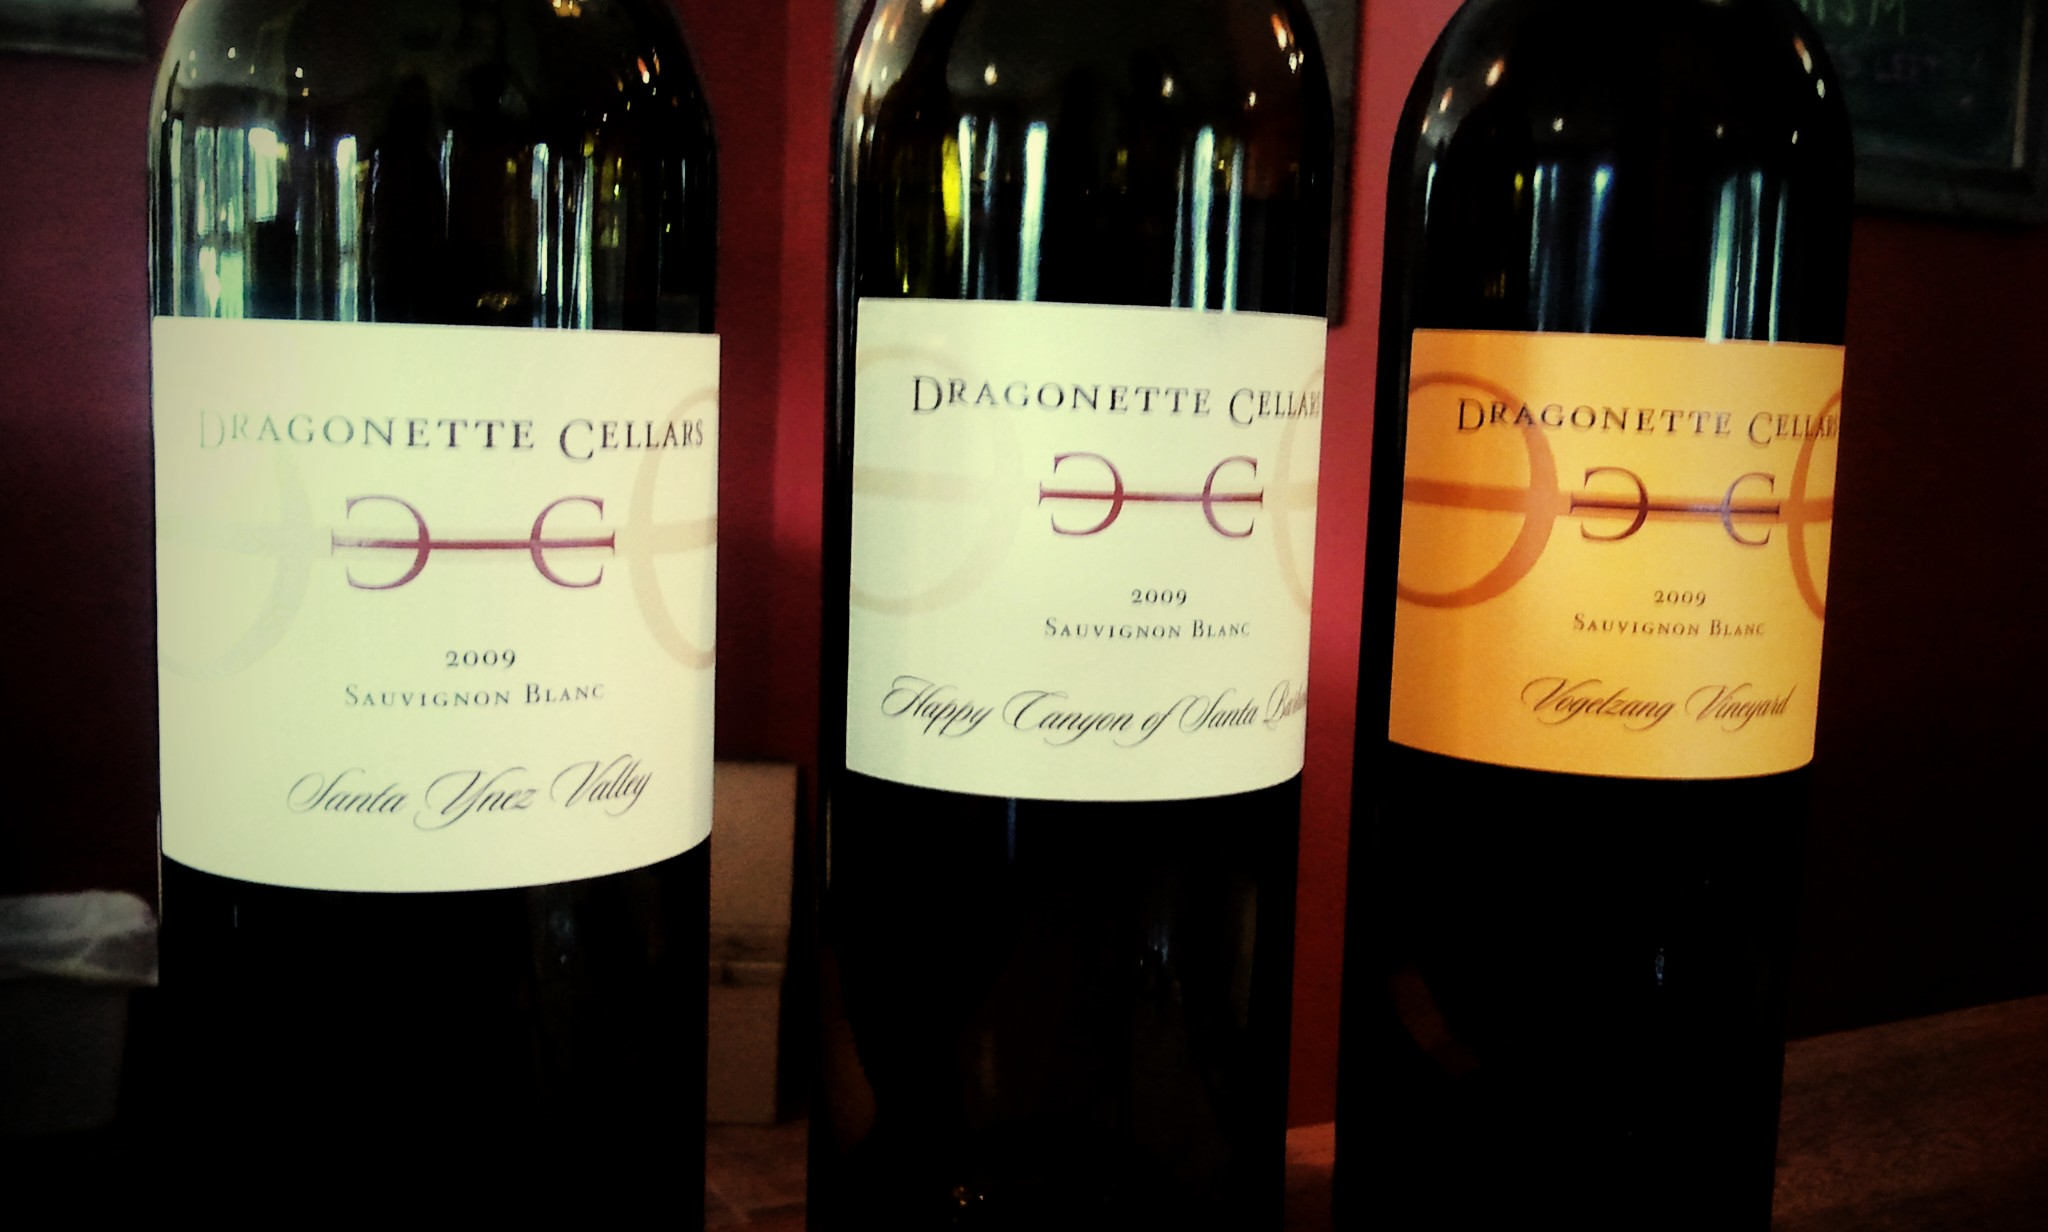 Dragonette Cellars Santa Barbara Restaurants Hotels